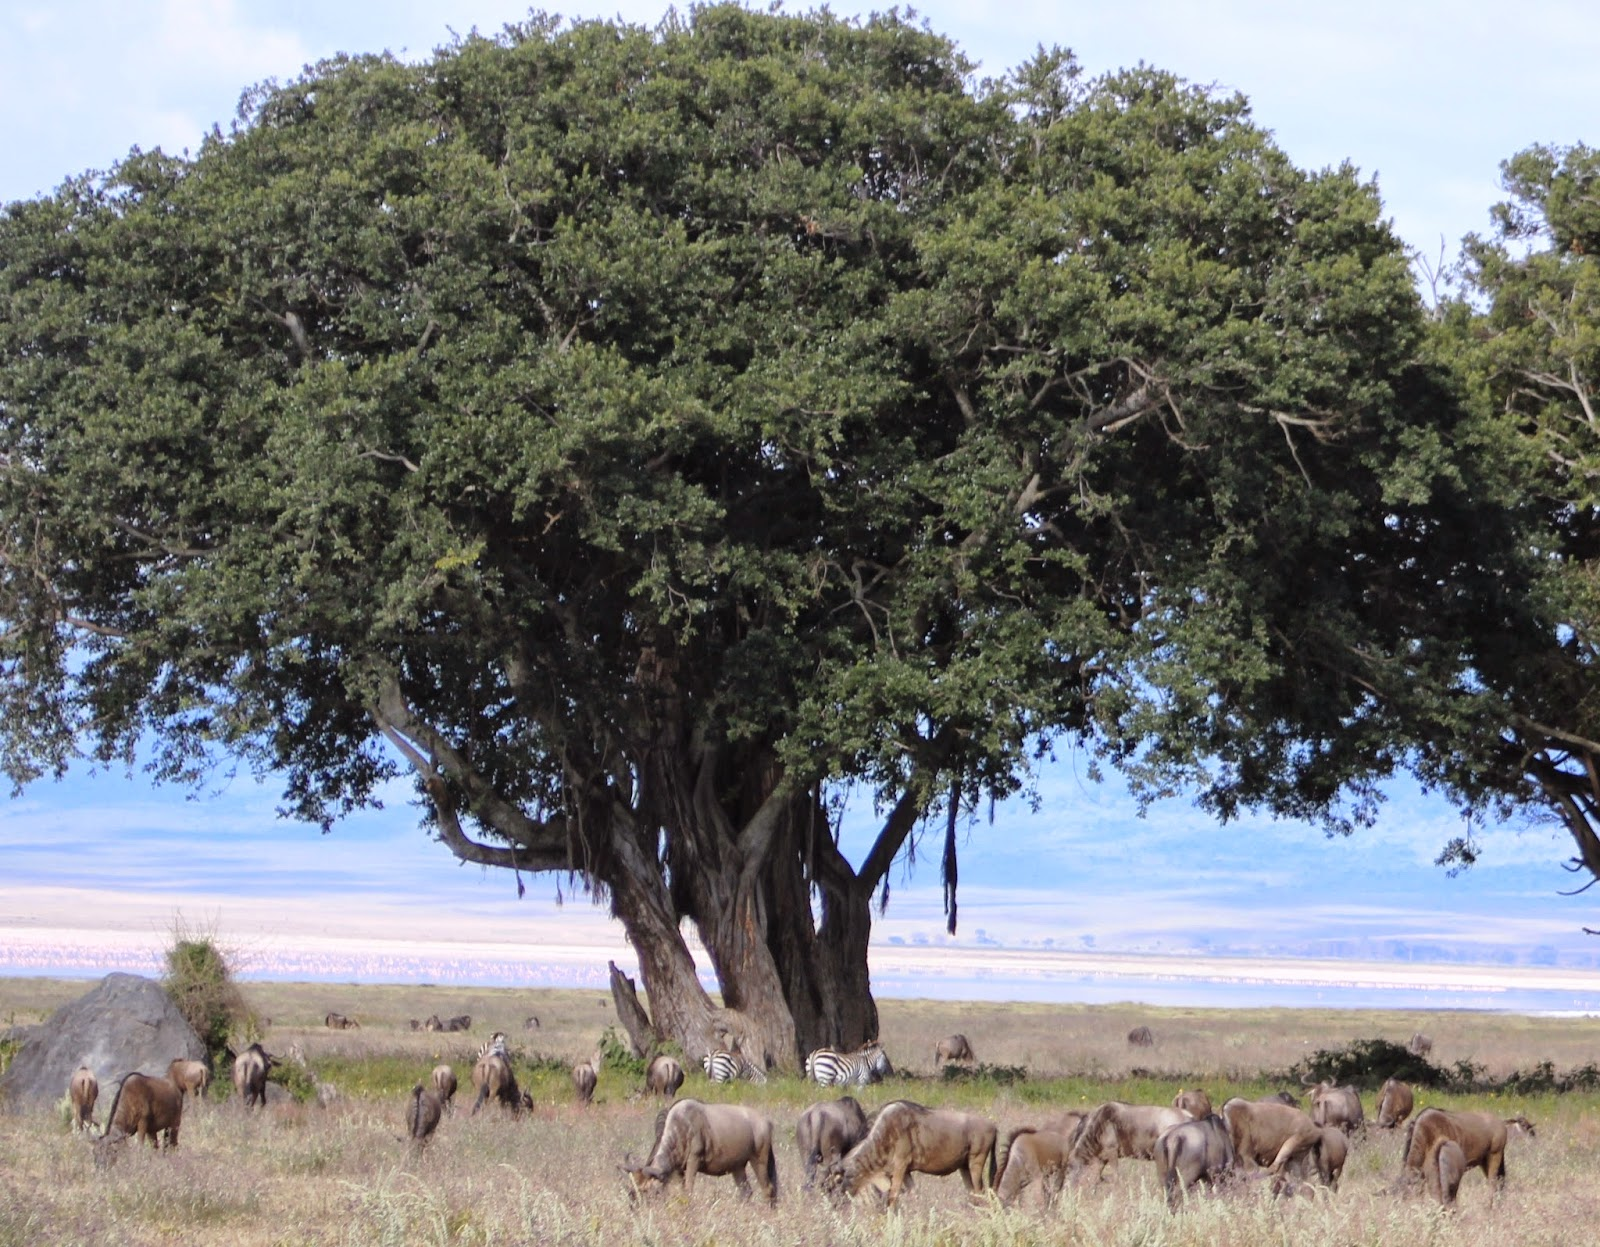 Souvenir Chronicles Africa Ngorongoro Crater Part 1